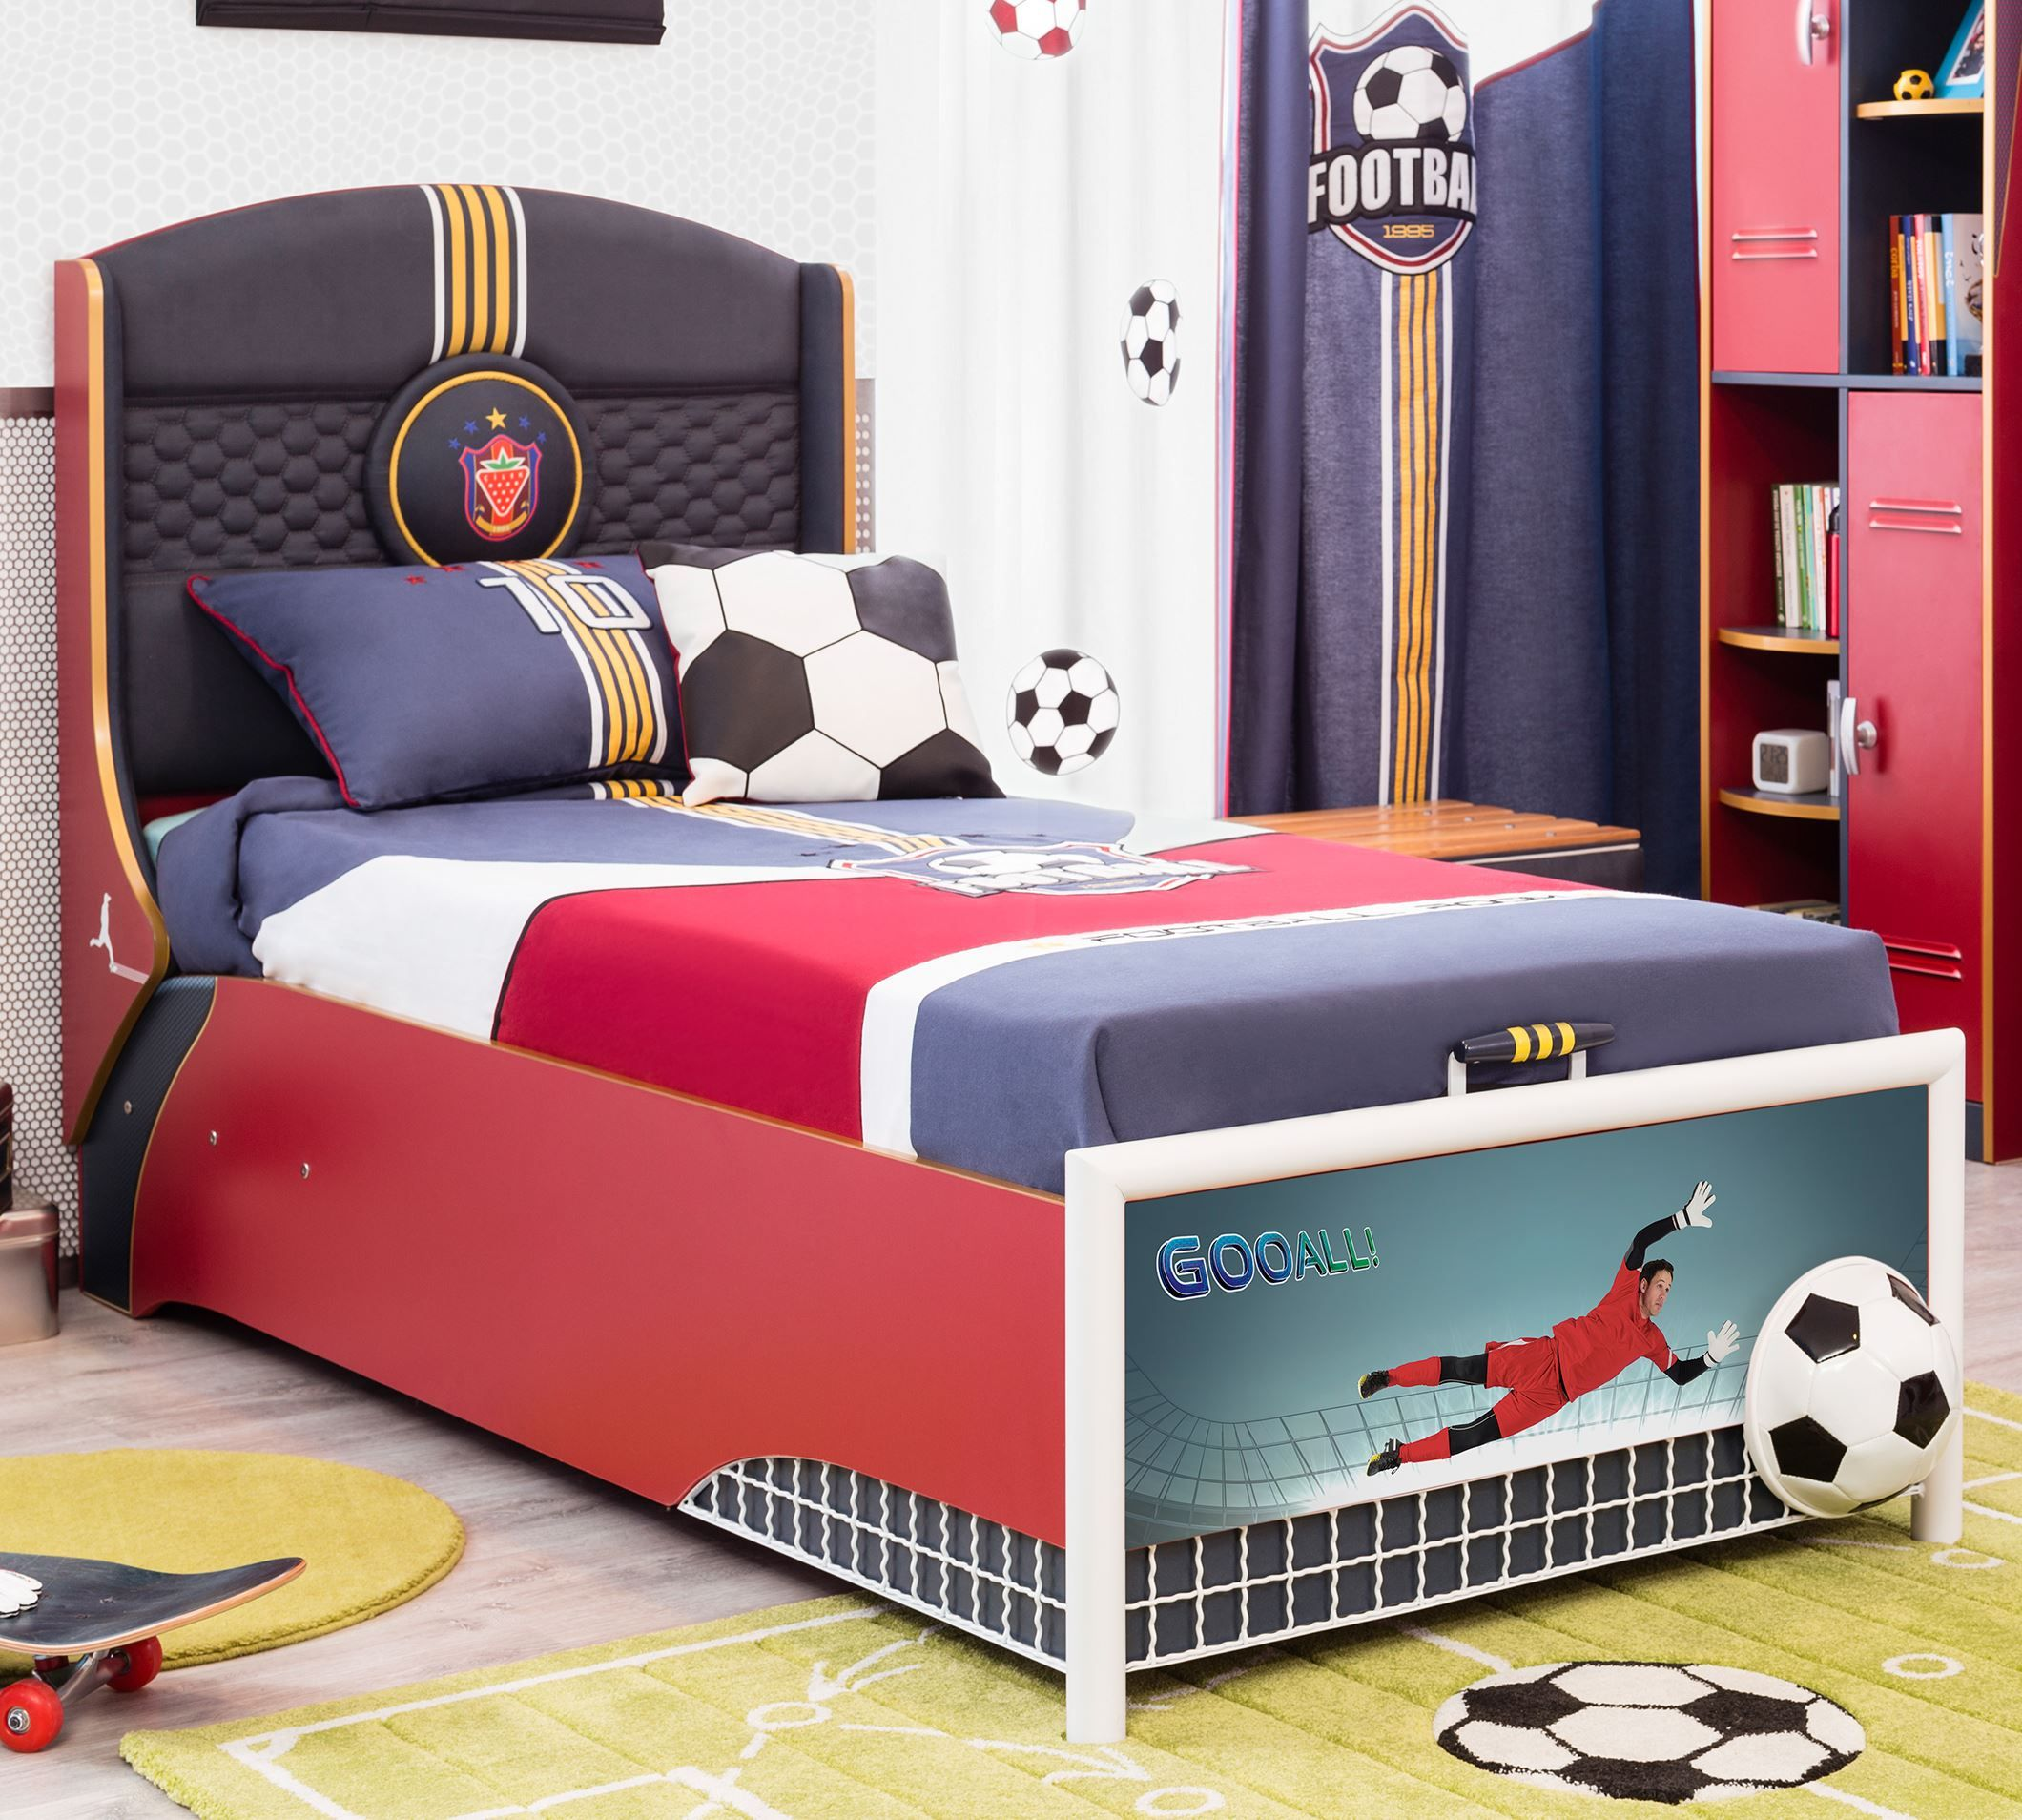 cilek football bett mit bettkasten kostenloser versand. Black Bedroom Furniture Sets. Home Design Ideas